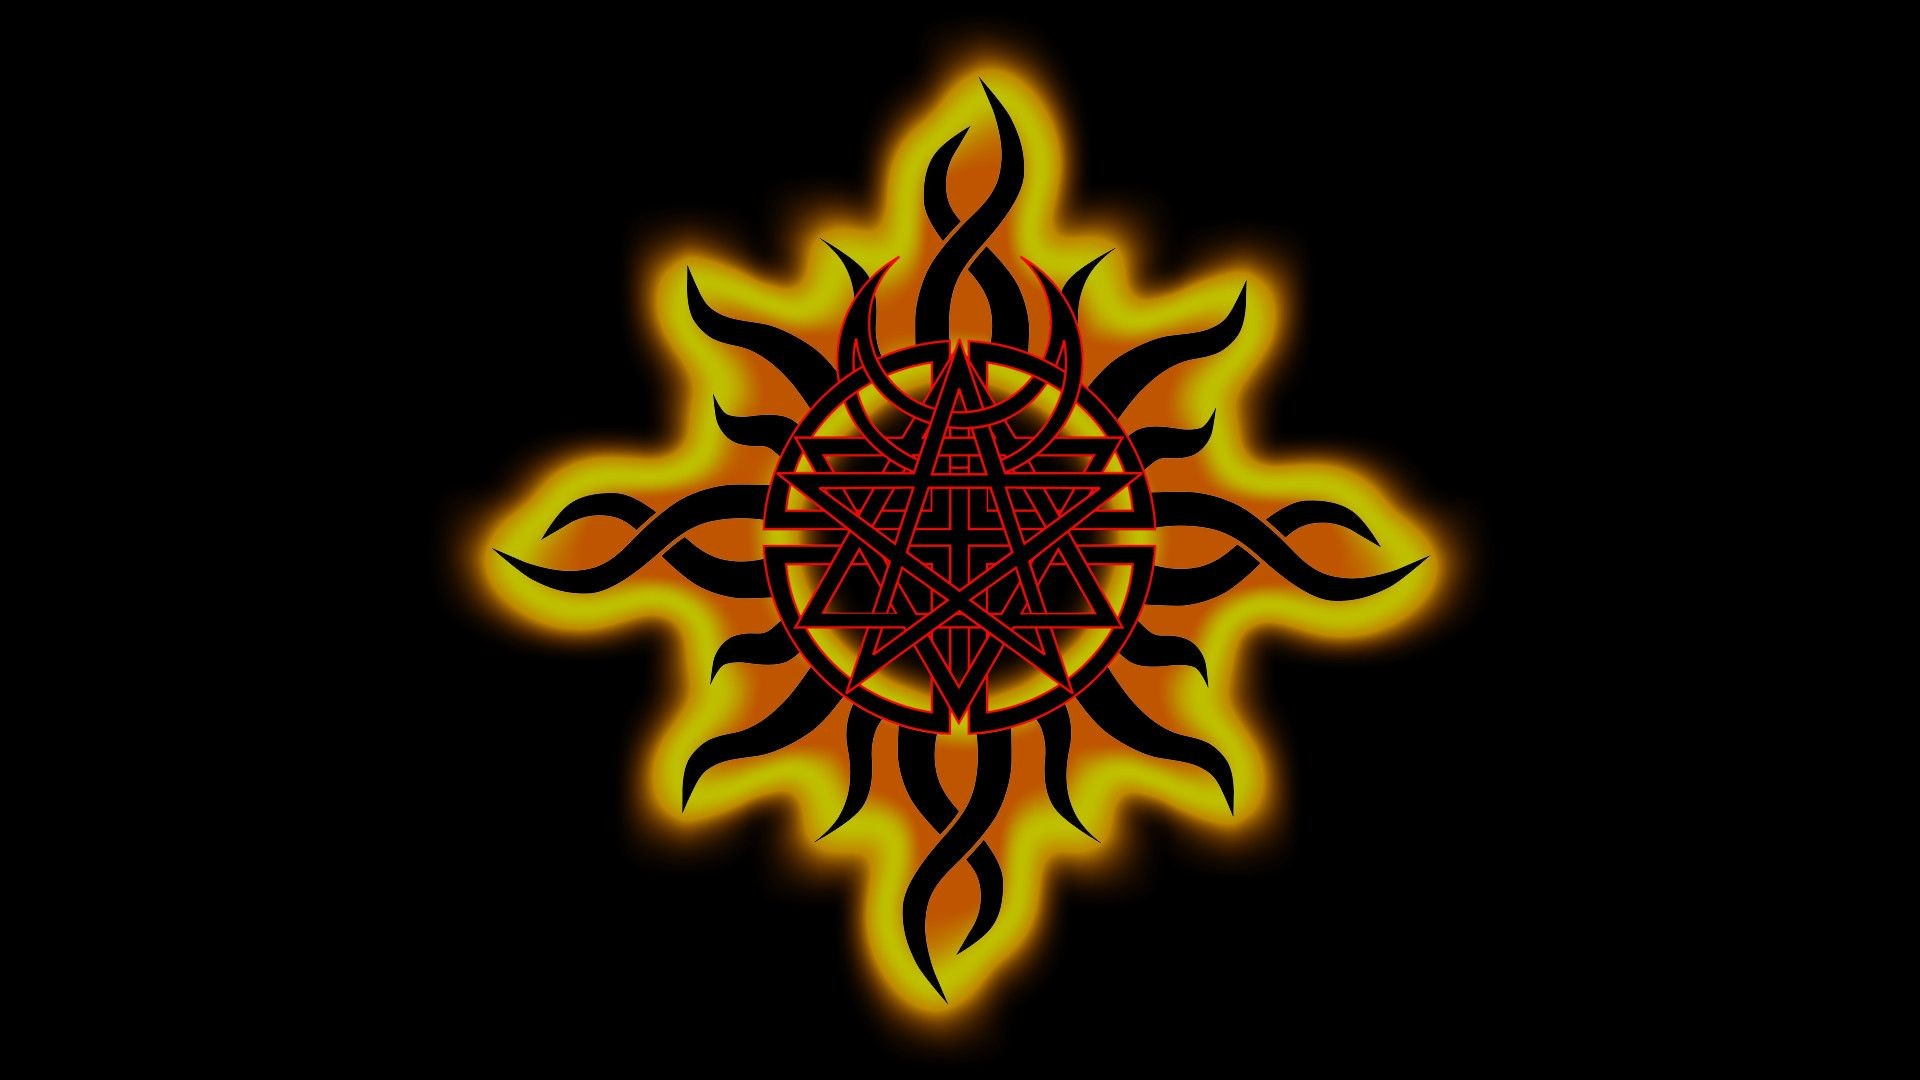 52+ Godsmack Sun Wallpapers on WallpaperPlay.